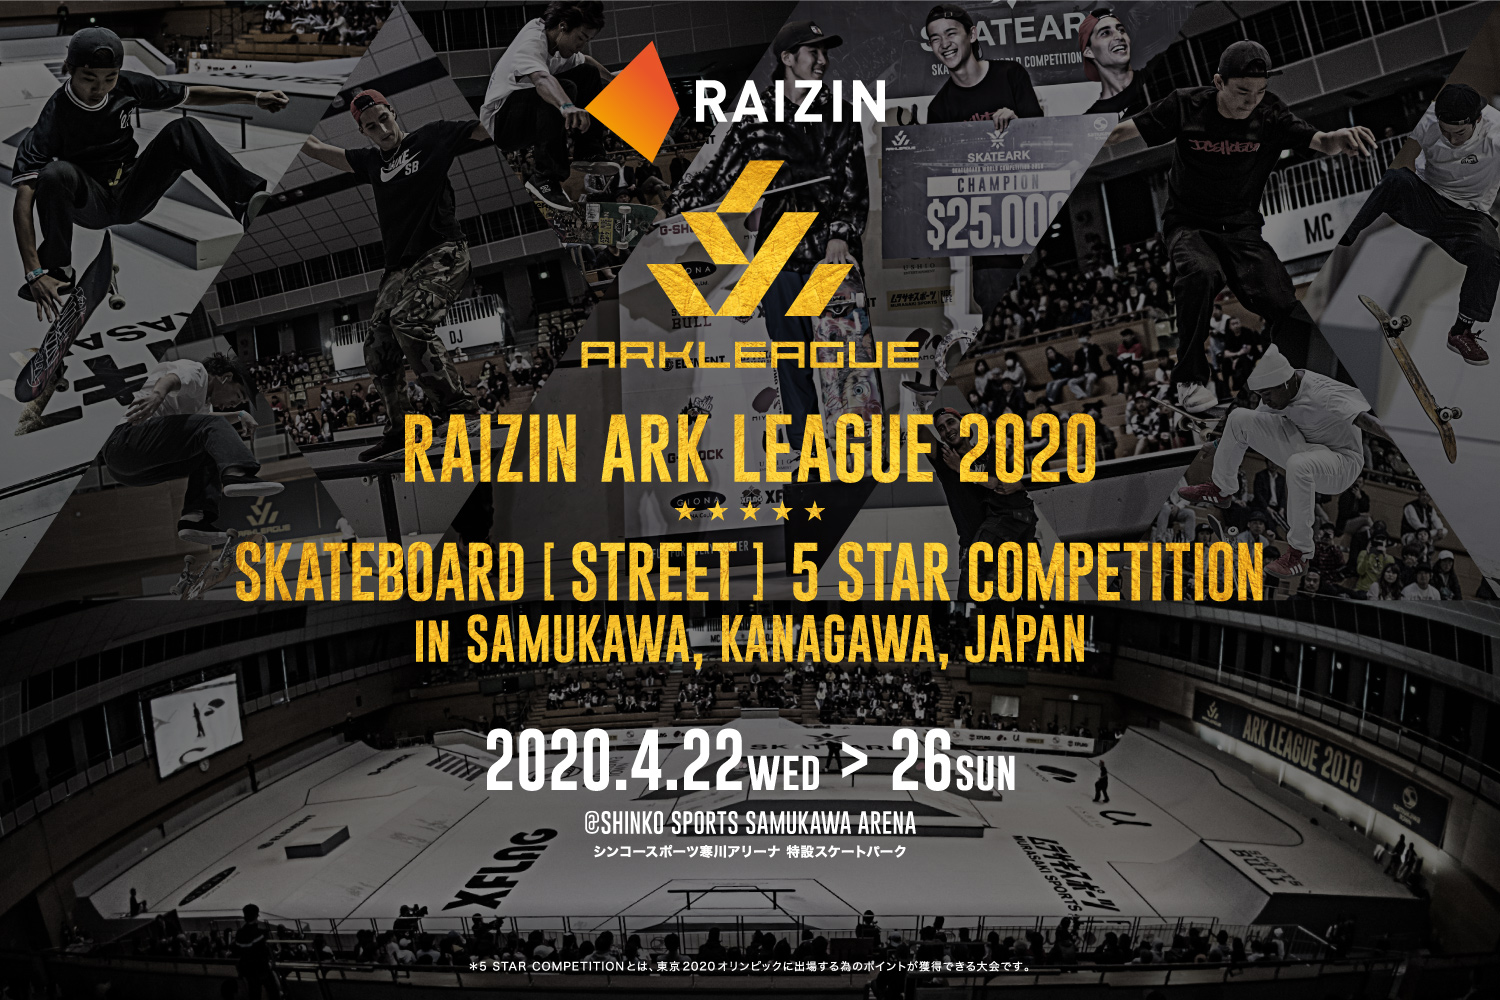 ARK LEAGUE 2020 SKATEBOARD [STREET] GLOBAL OLYMPIC QUALIFYING EVENT IN SAMUKAWA, KANAGAWA, JAPAN